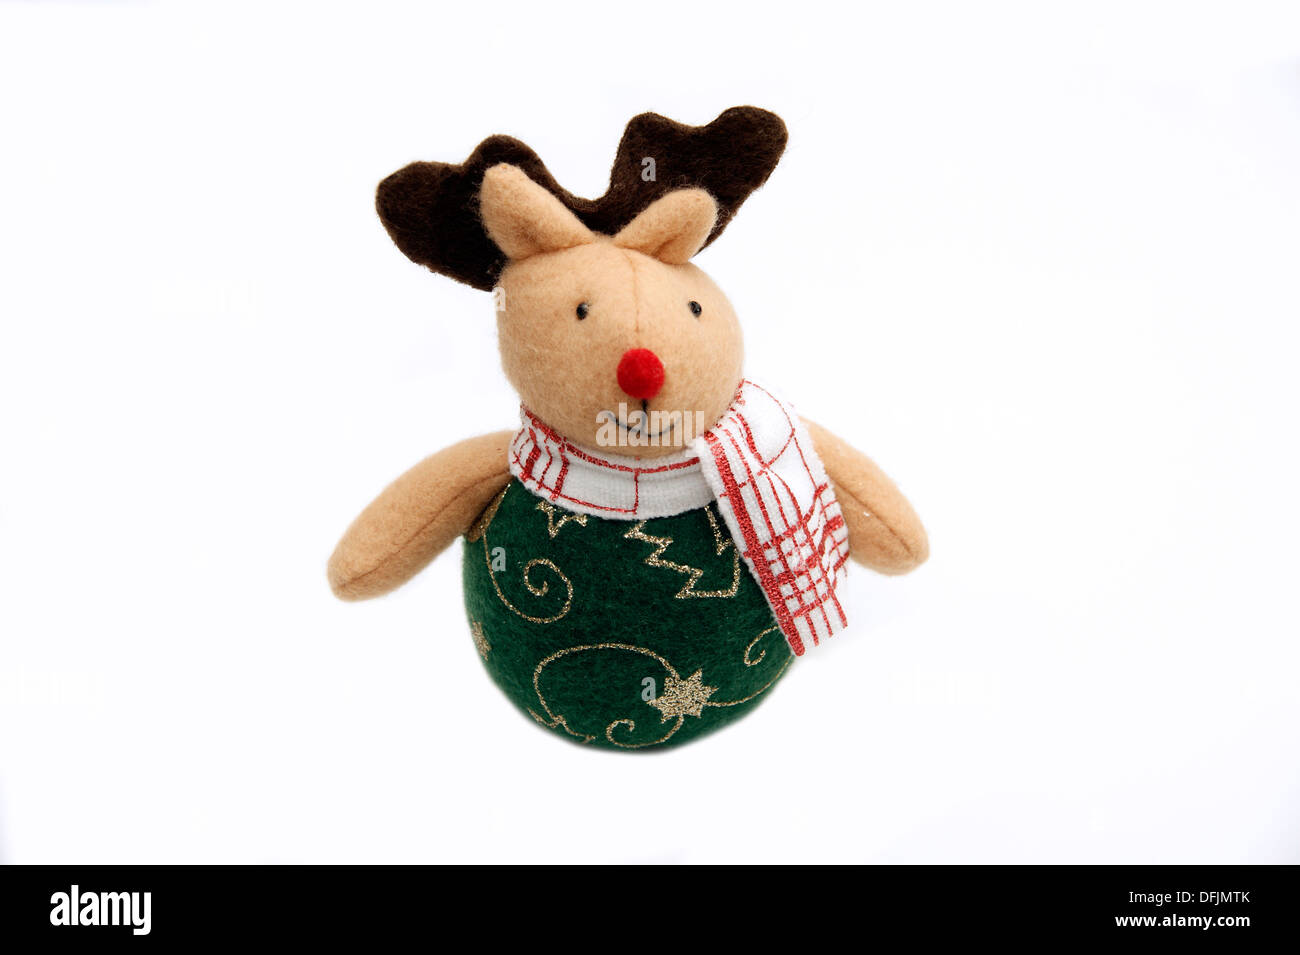 fun soft toy rudolph the red nosed reindeer christmas decoration on a white background